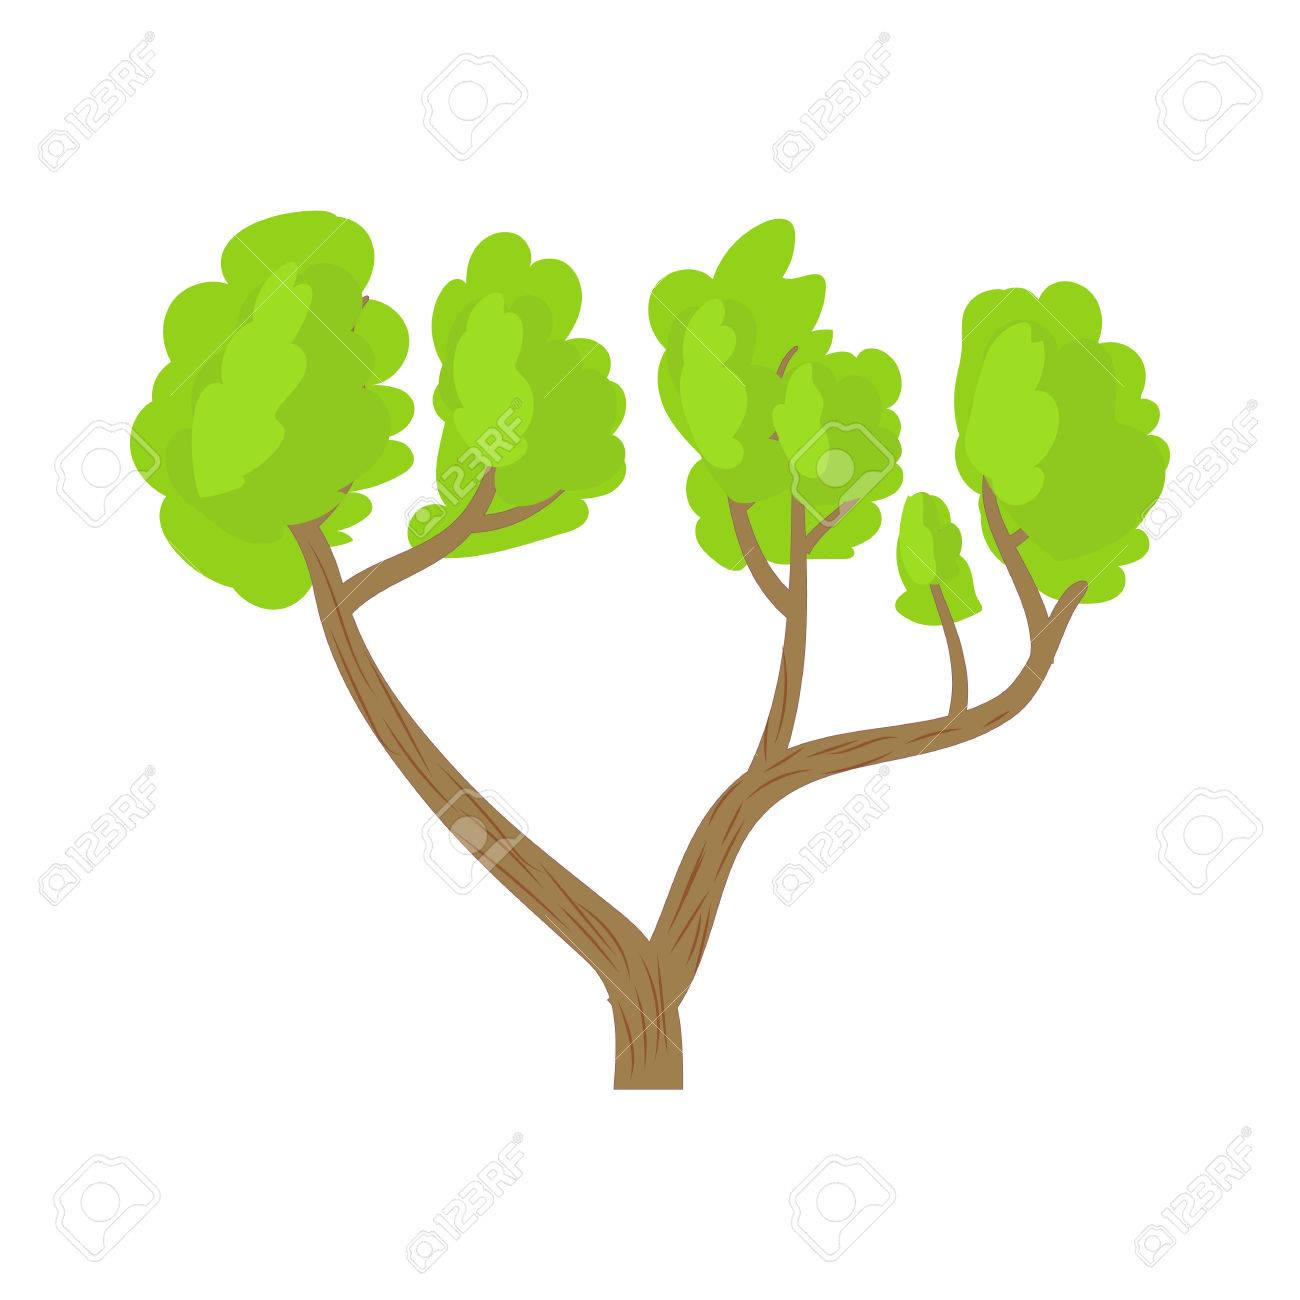 A Tree With A Spreading Green Crown Icon In Cartoon Style On Royalty Free Cliparts Vectors And Stock Illustration Image 59052432 612 x 612 jpeg 30 кб. 123rf com